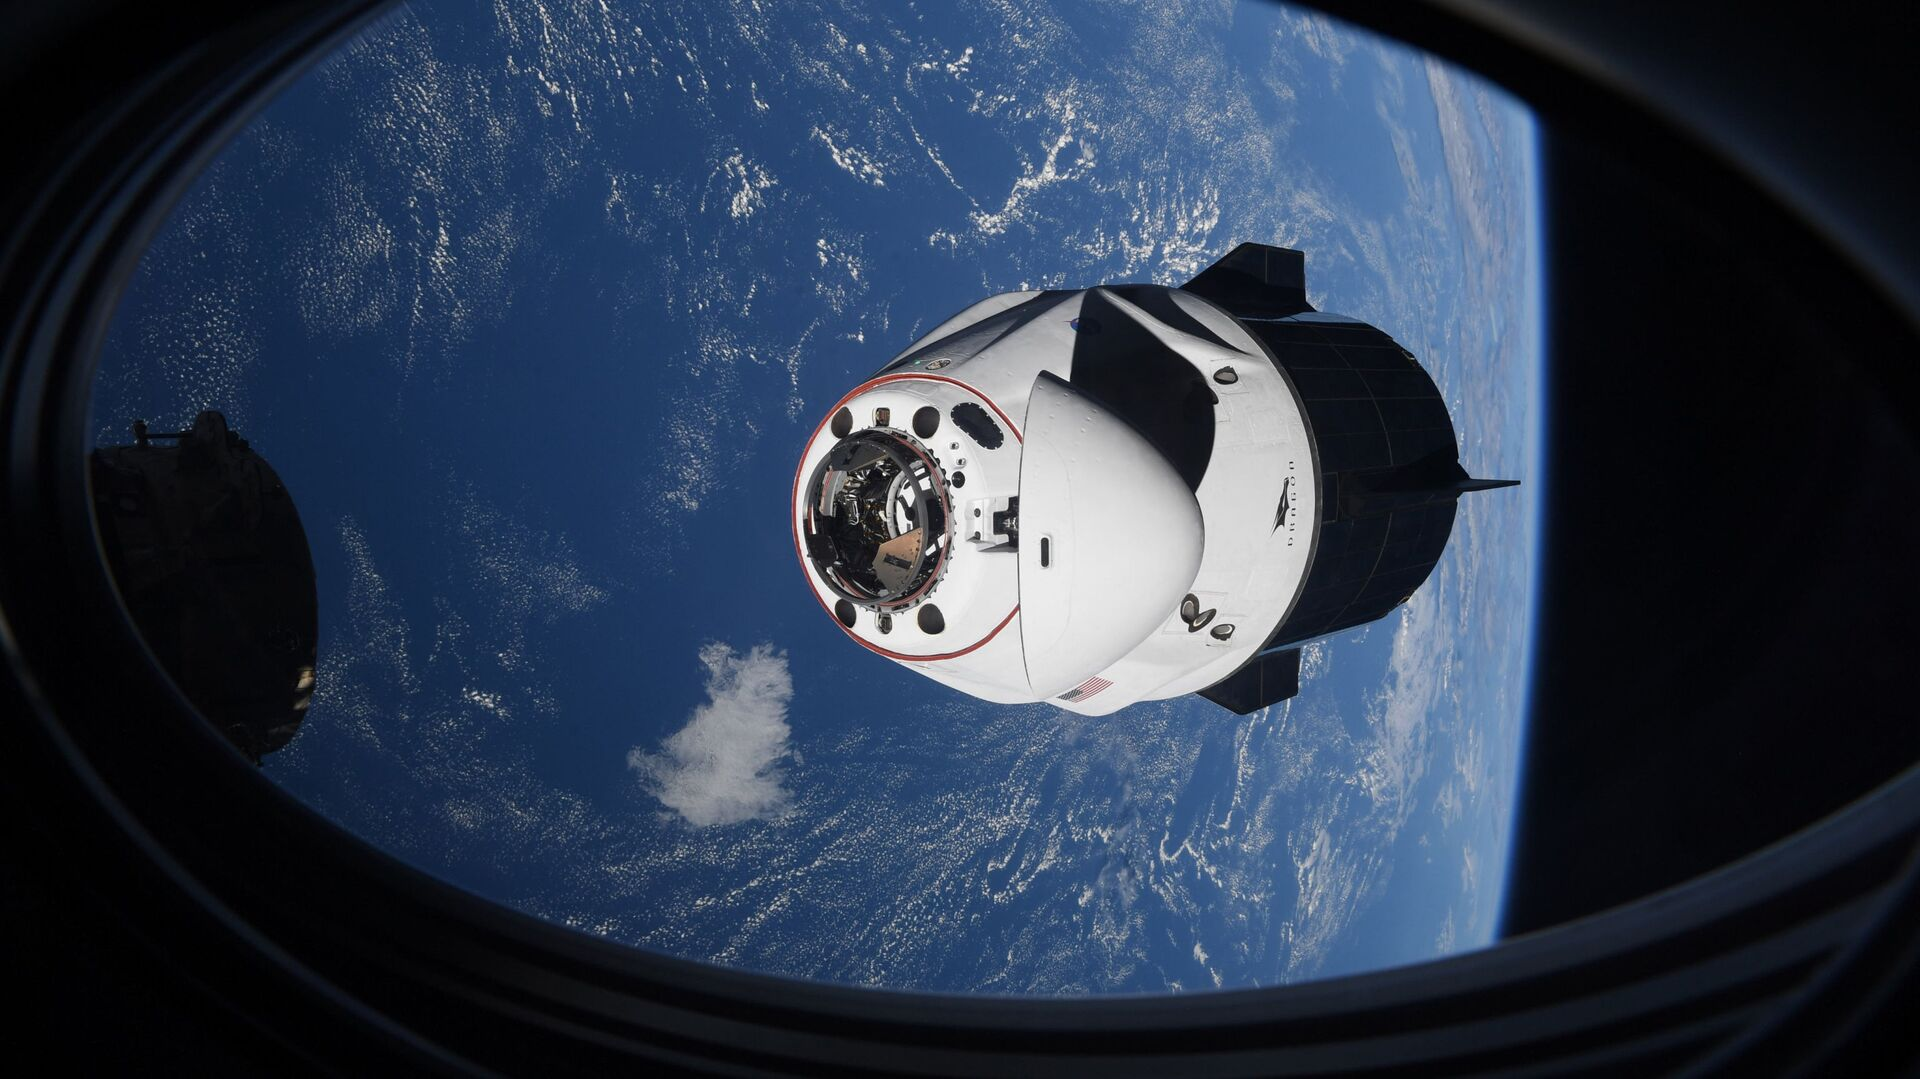 In this Saturday, April 24, 2021 photo made available by NASA, the SpaceX Crew Dragon capsule approaches the International Space Station for docking - Sputnik International, 1920, 18.09.2021